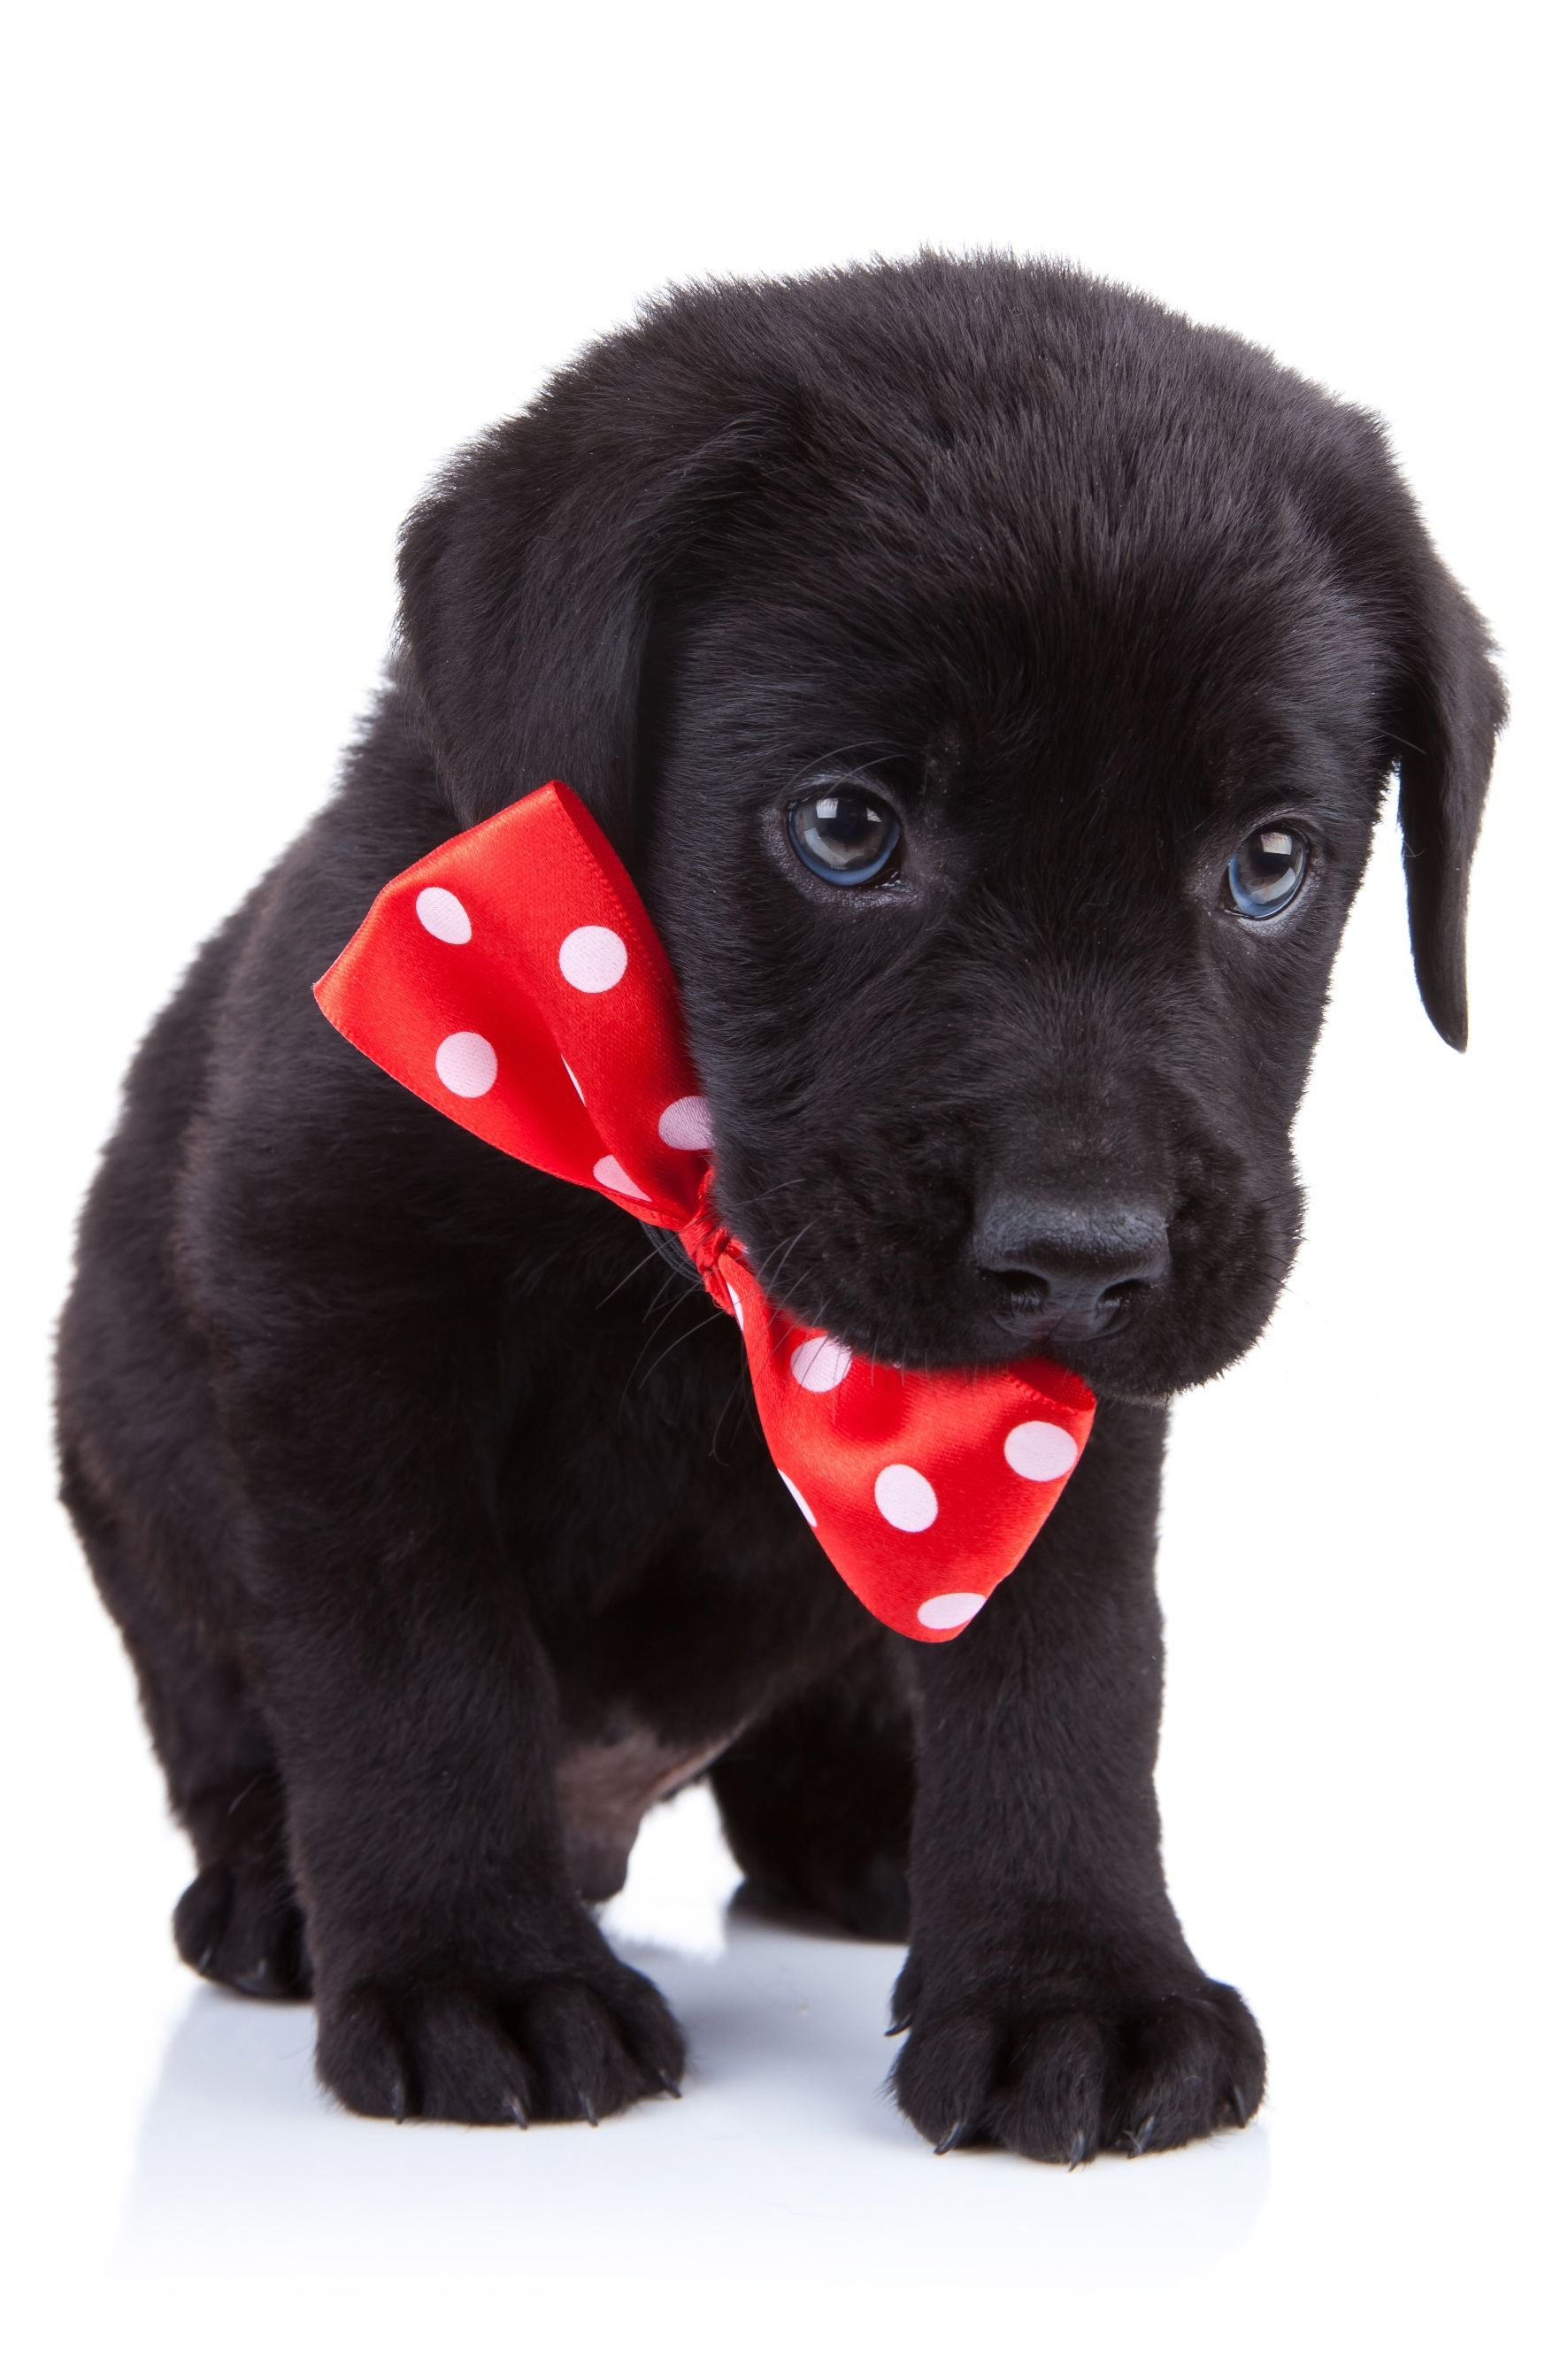 Read Before You Give A Puppy For A Christmas Present Labrador Retriever Labrador Retriever Puppies Puppy Dog Eyes